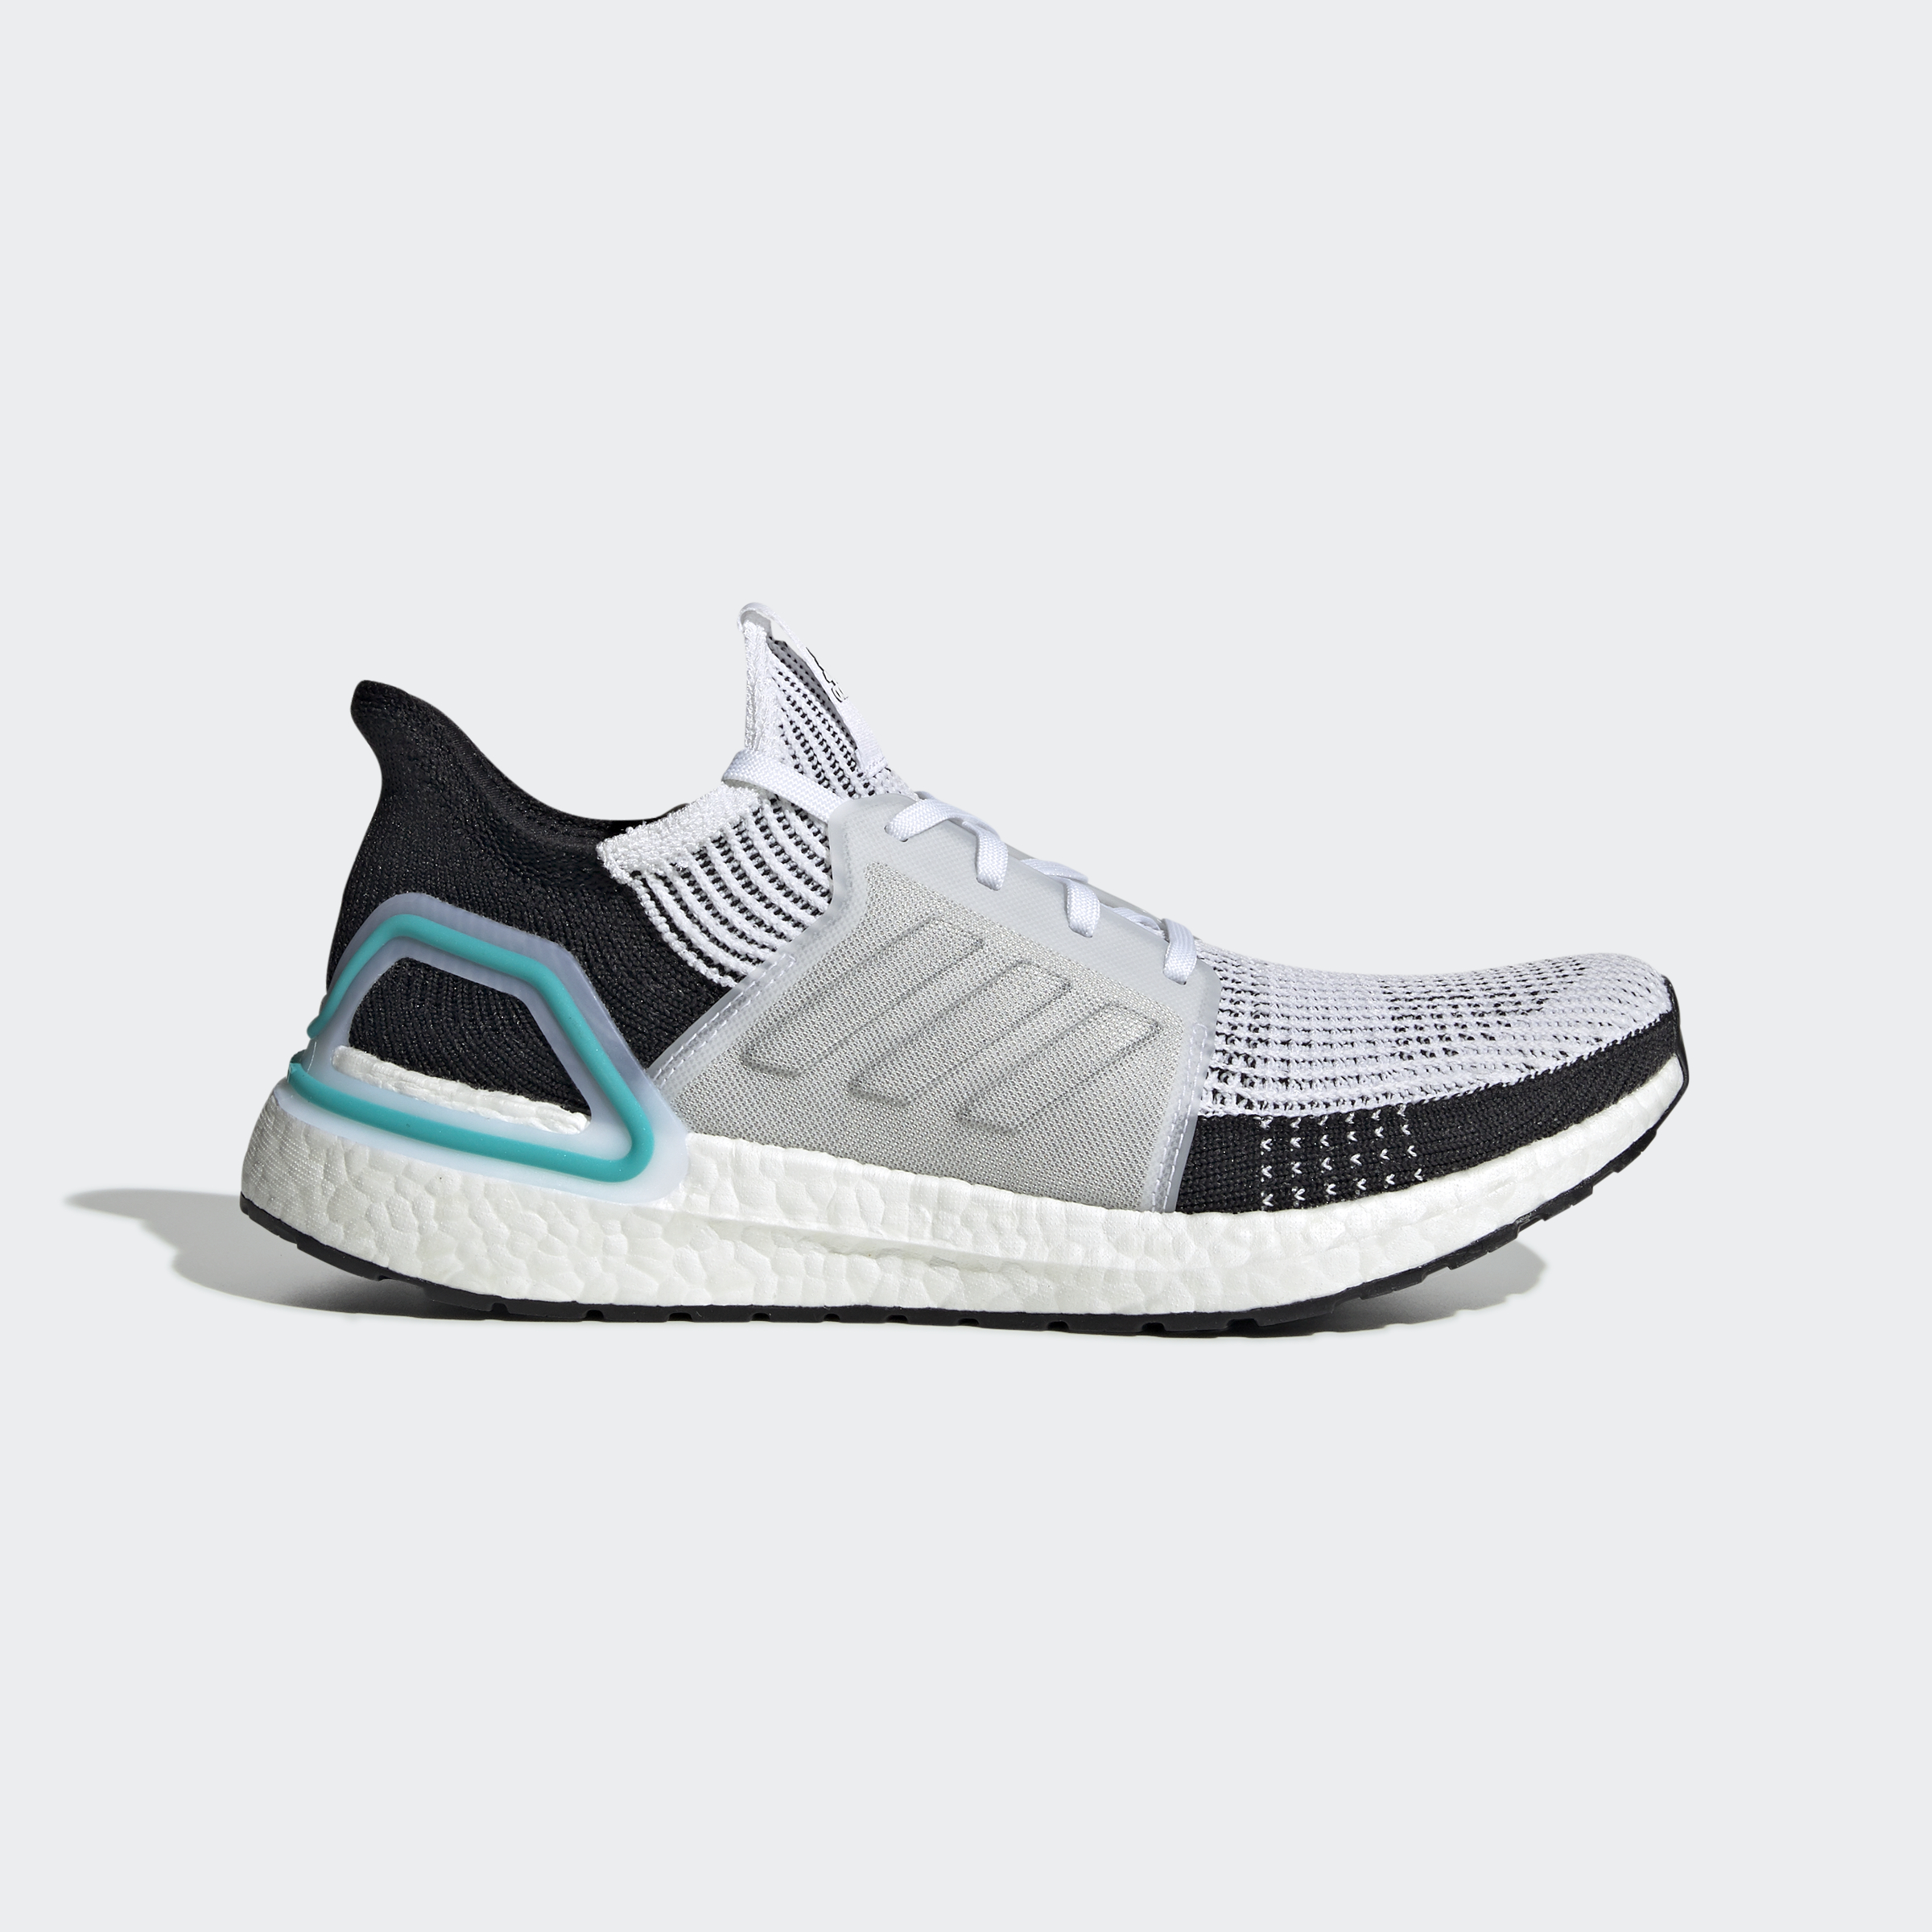 adidas-Ultraboost-19-Shoes-Athletic-amp-Sneakers thumbnail 142